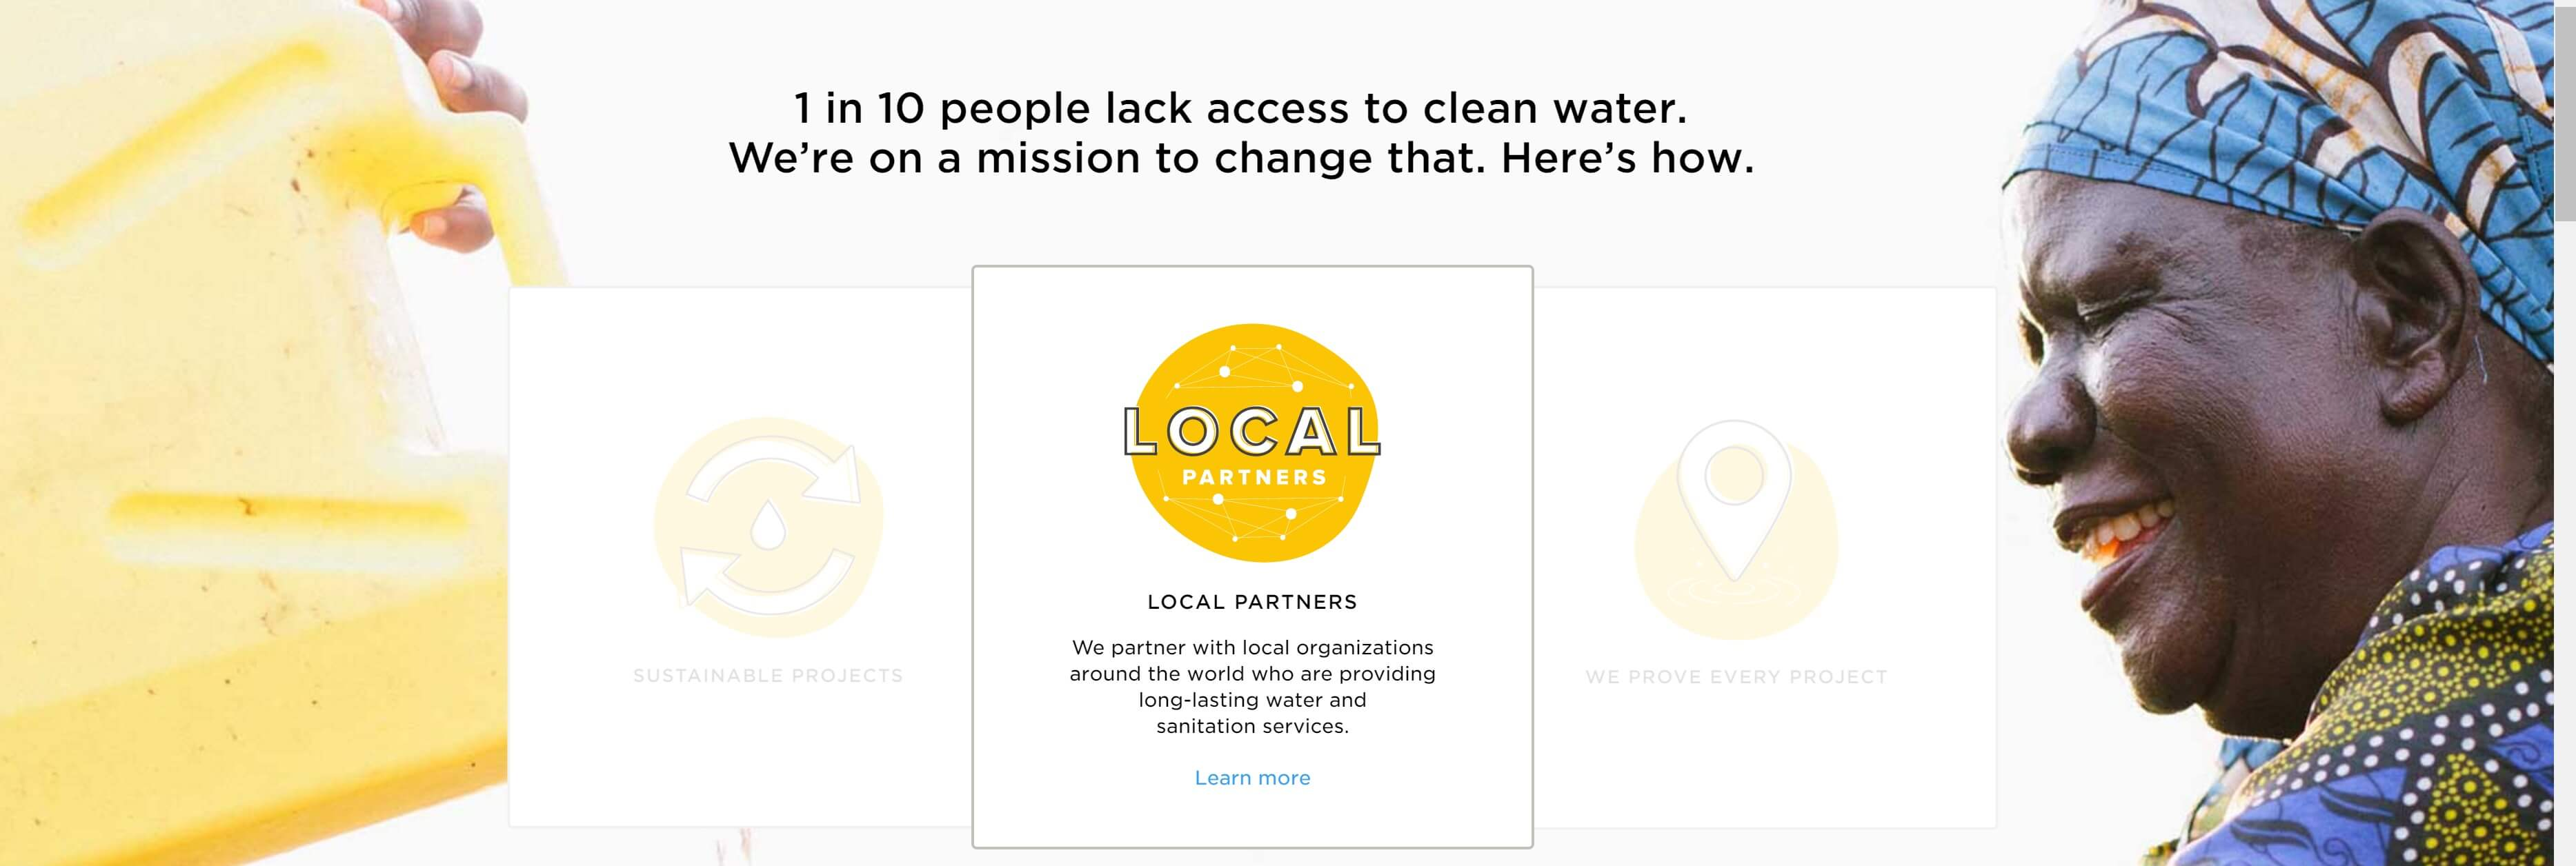 How Did Charity Water's Site Help them Raise 30 Million Dollars?